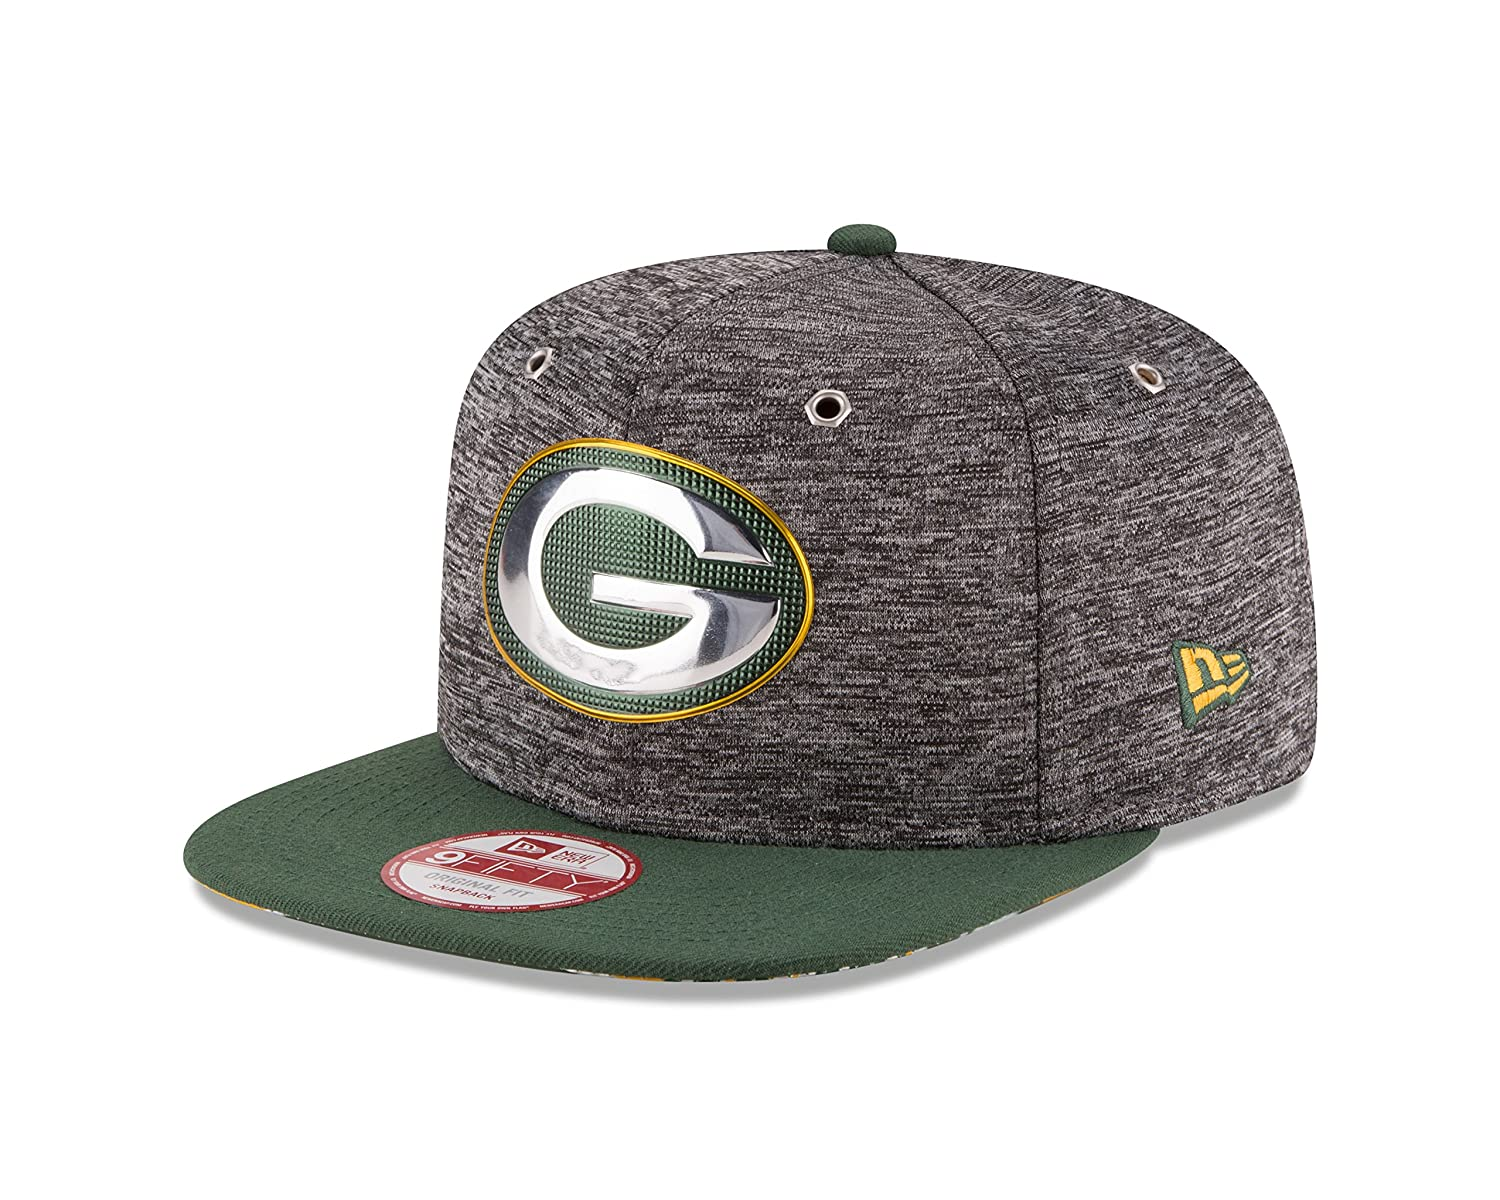 save off 0b03b 57104 Amazon.com   NFL Green Bay Packers 2016 Draft 9Fifty Snapback Cap, One  Size, Heather Gray   Sports   Outdoors